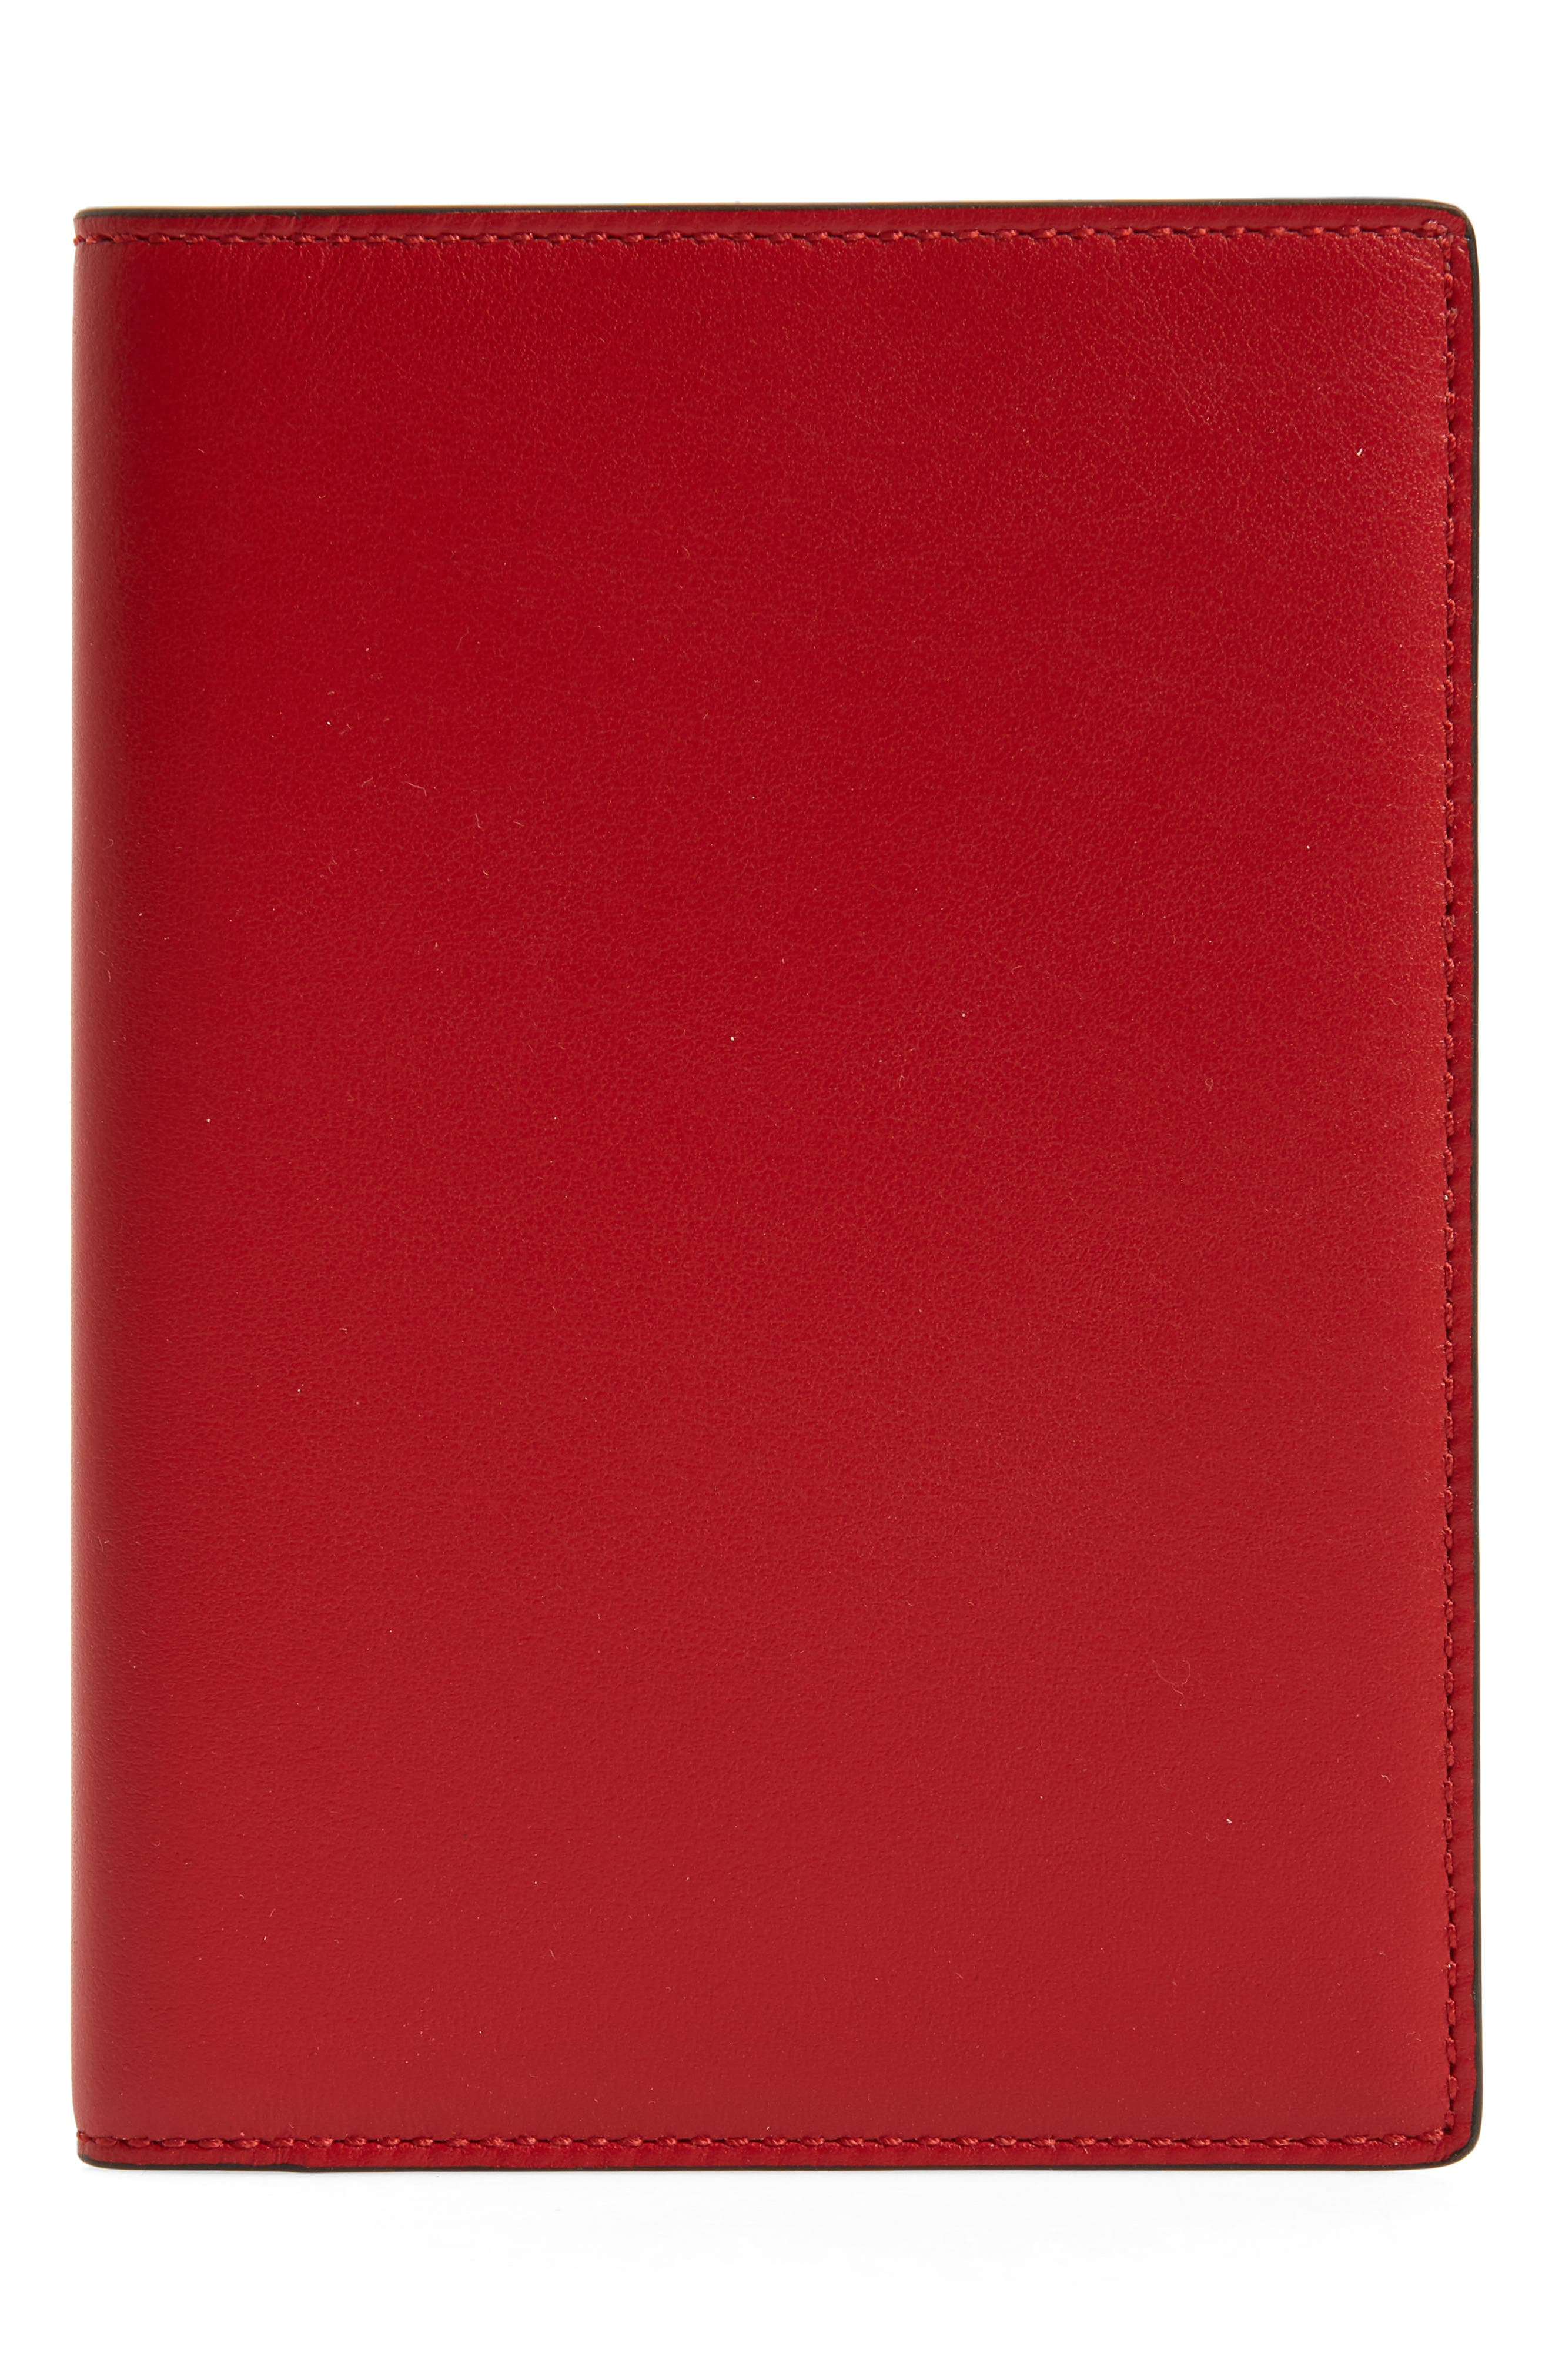 Hero Leather Passport Cover,                             Main thumbnail 1, color,                             Red